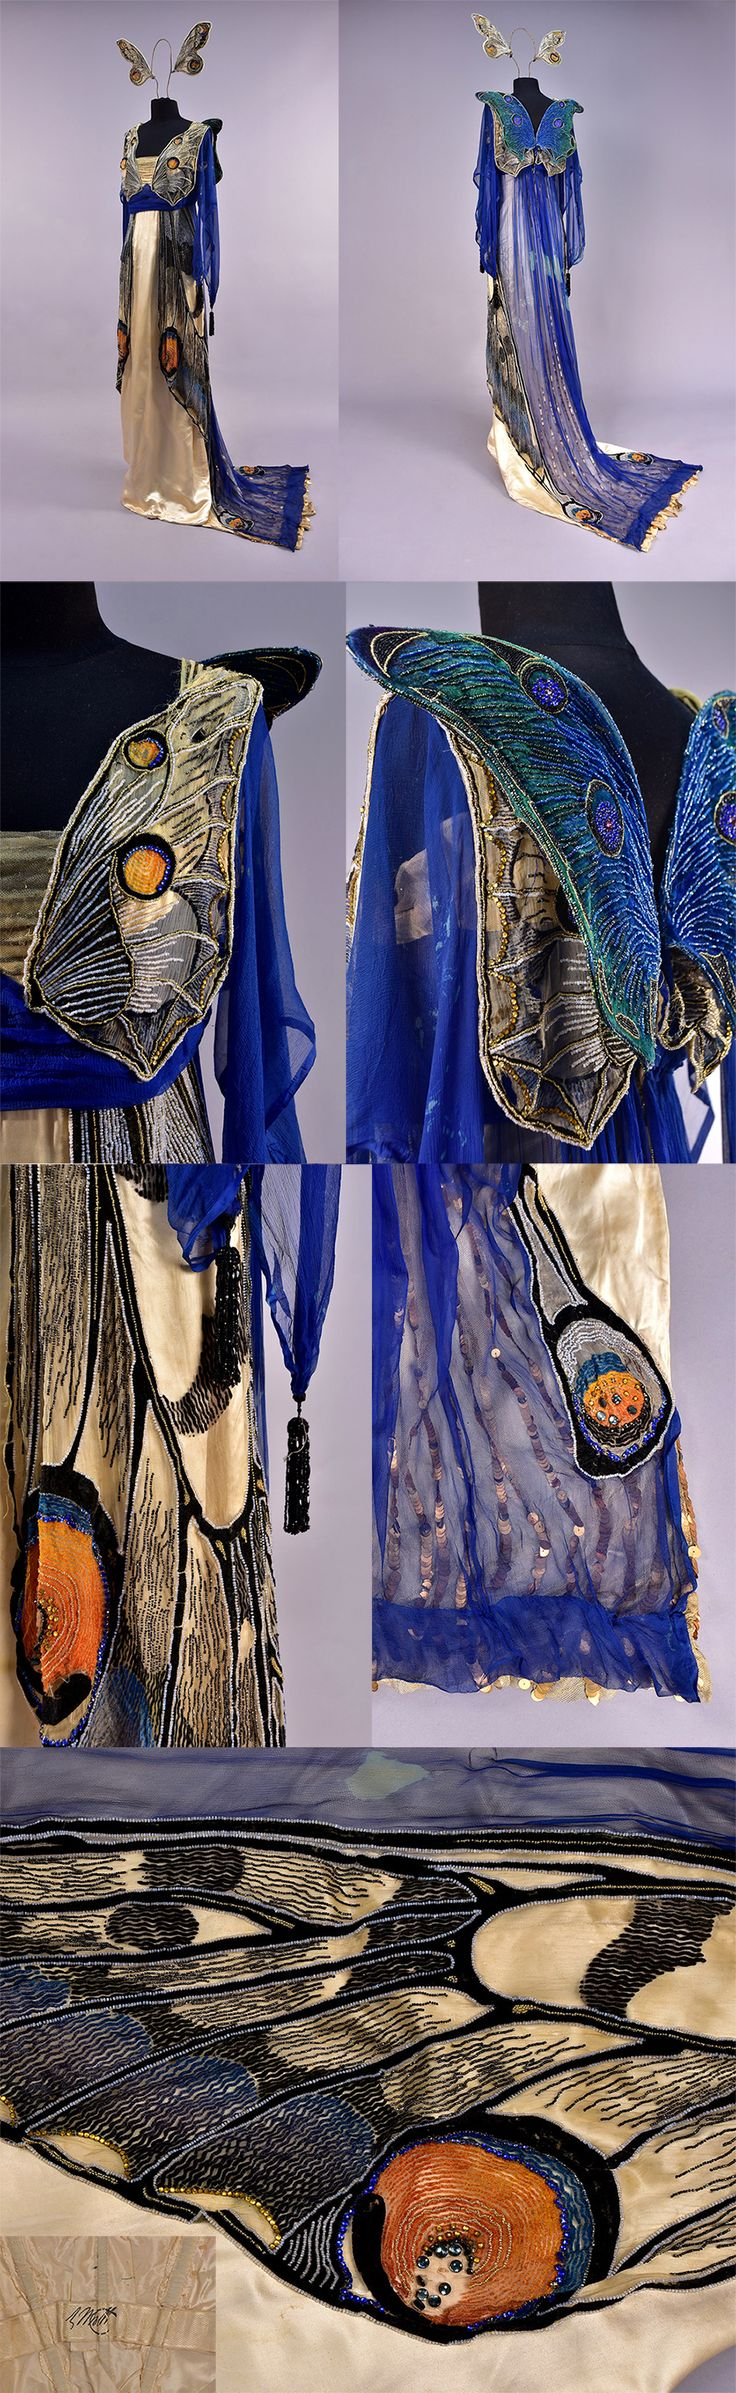 Worth beaded butterfly fancy dress gown, circa 1912 | Trained ivory silk charmeuse beneath a heavily decorated chiffon overlay, the bodice front and back having a pair of butterfly wings in gold, white and blue beads, back of dress covered in blue chiffon over tulle with large gold sequined stripes, gold lamé loop to raise the train. Matching headpiece of wings in matching decoration on chiffon. Former property of Margaret Draper, Princess Boncompagni. Charles A. Whitaker Auctions